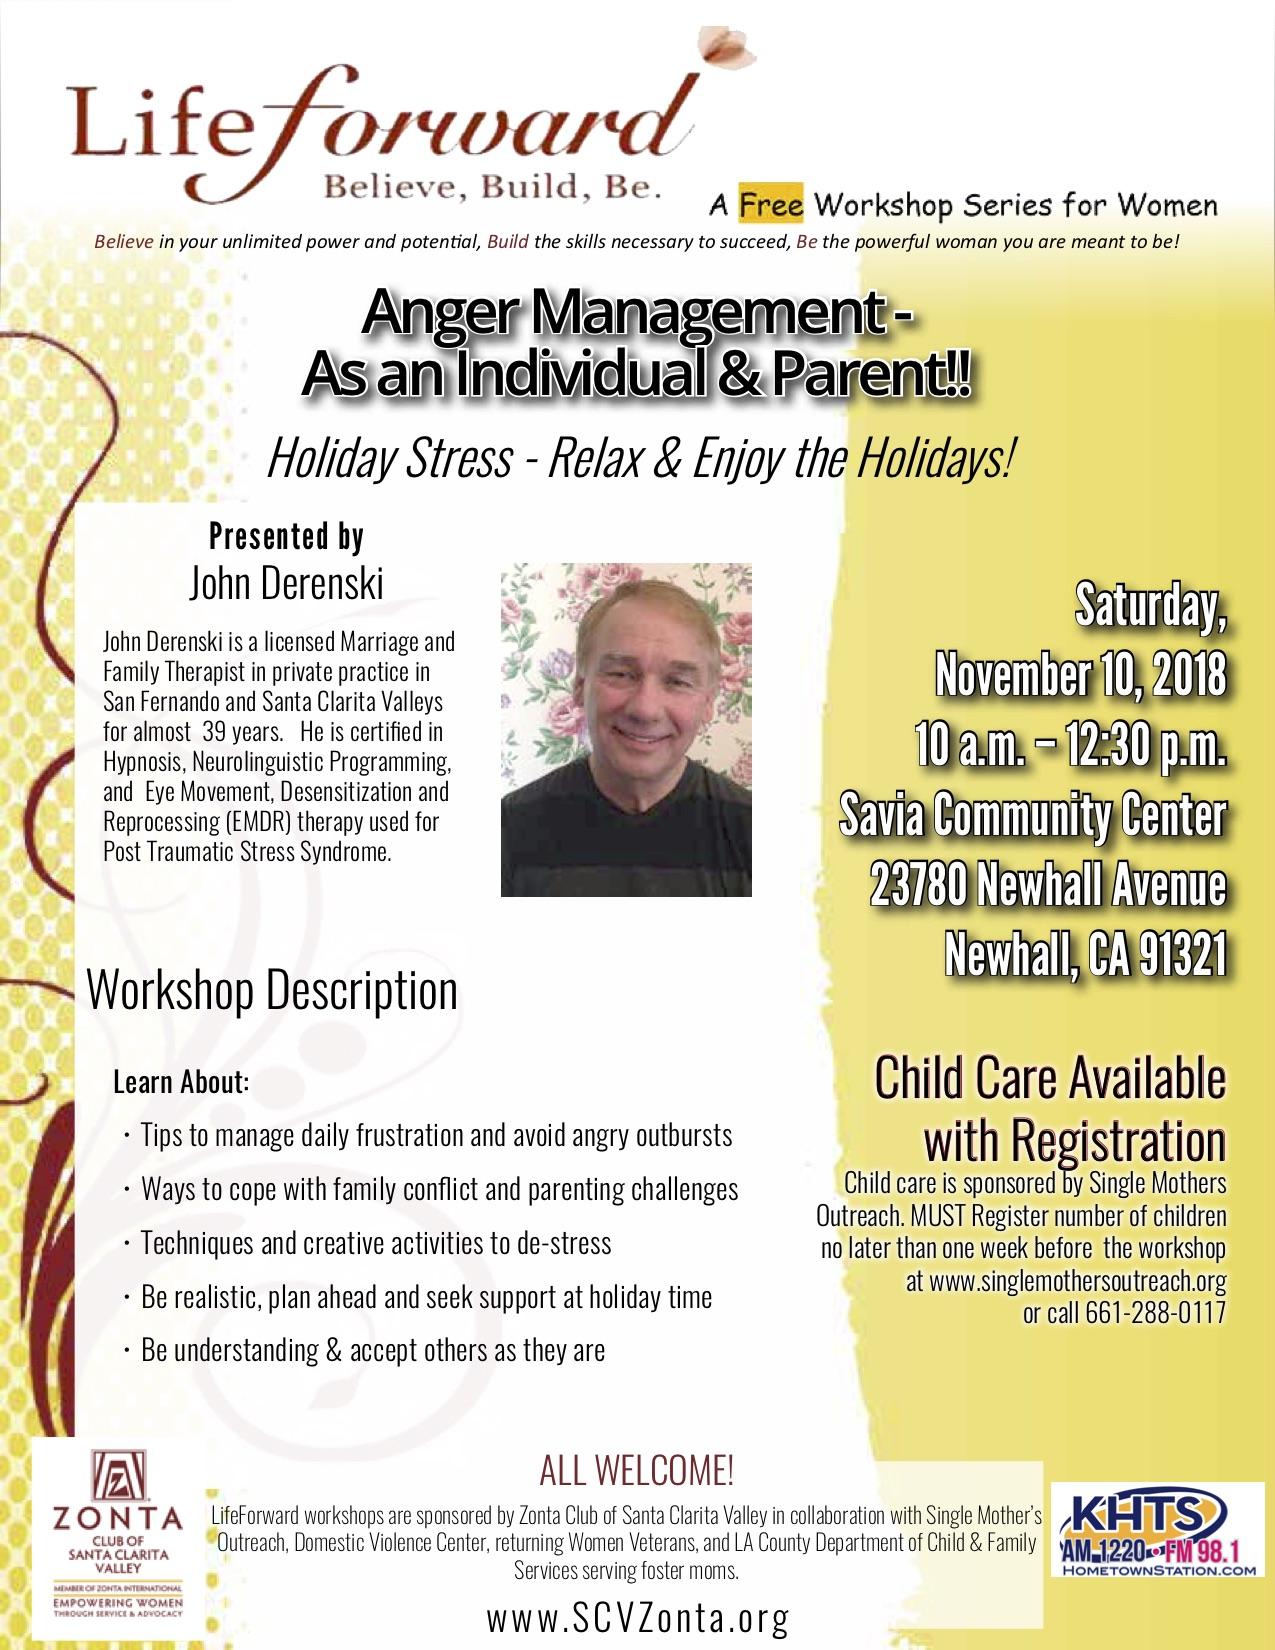 NOV 10 Anger Mgmt-Holiday Stress